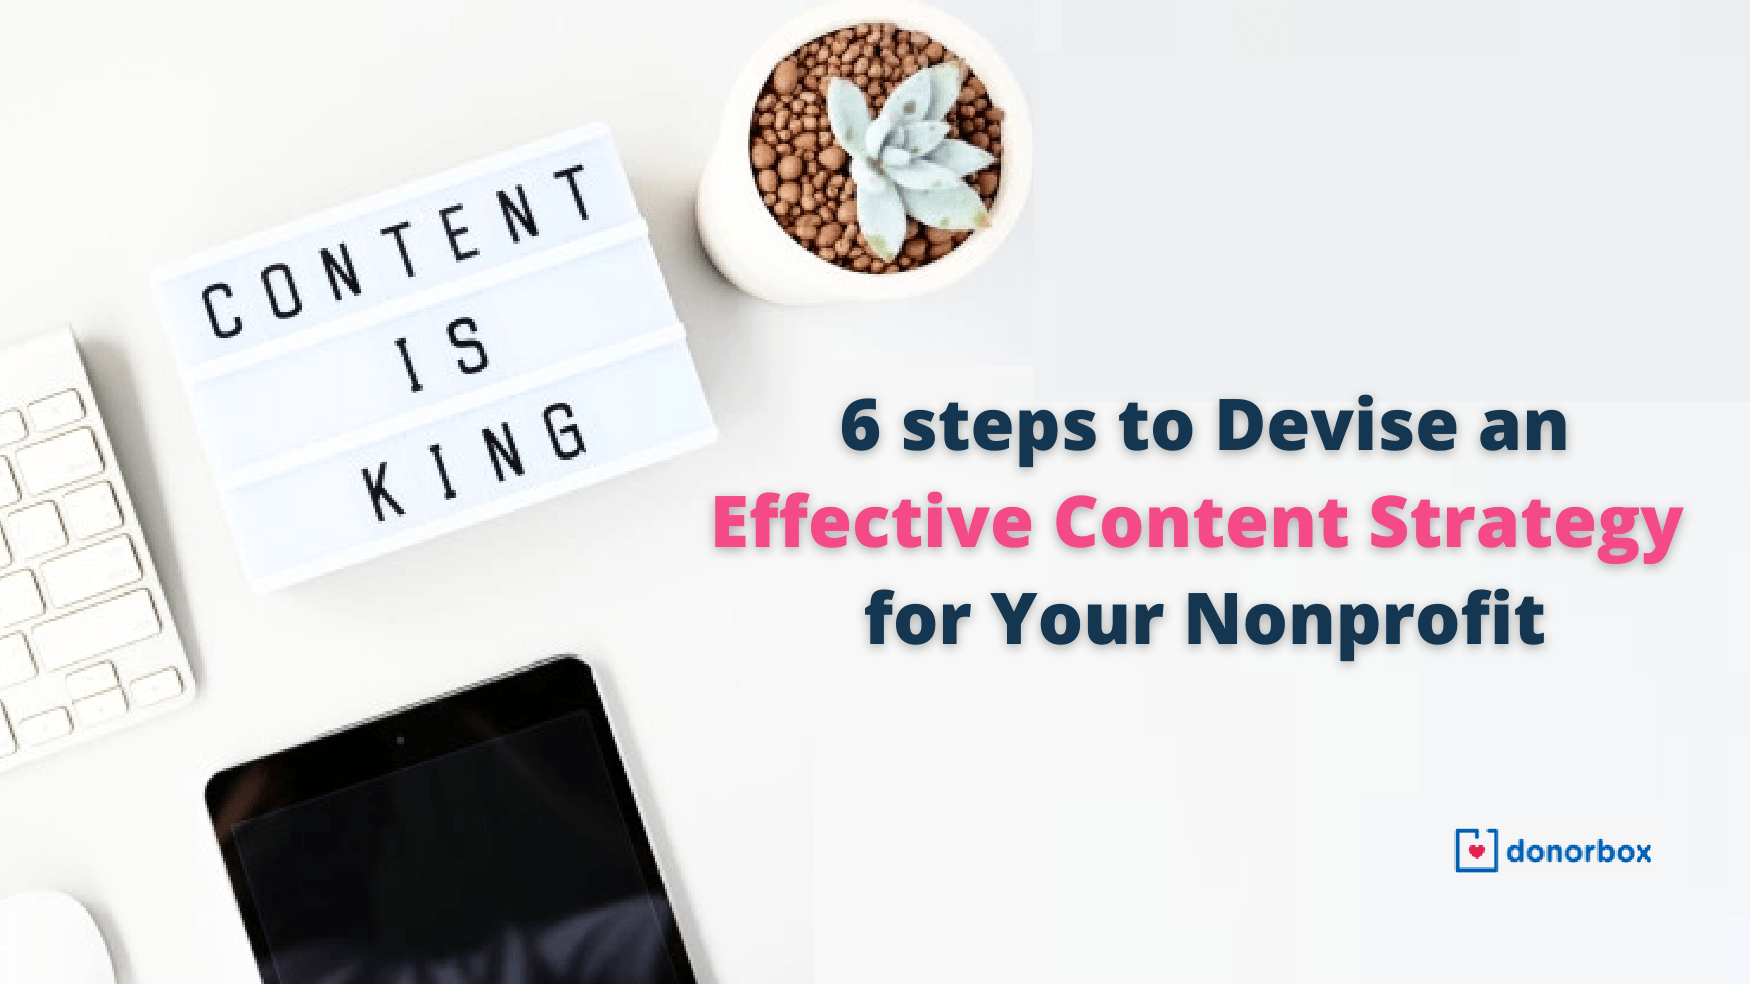 6 steps to Devise an Effective Content Strategy for Your Nonprofit